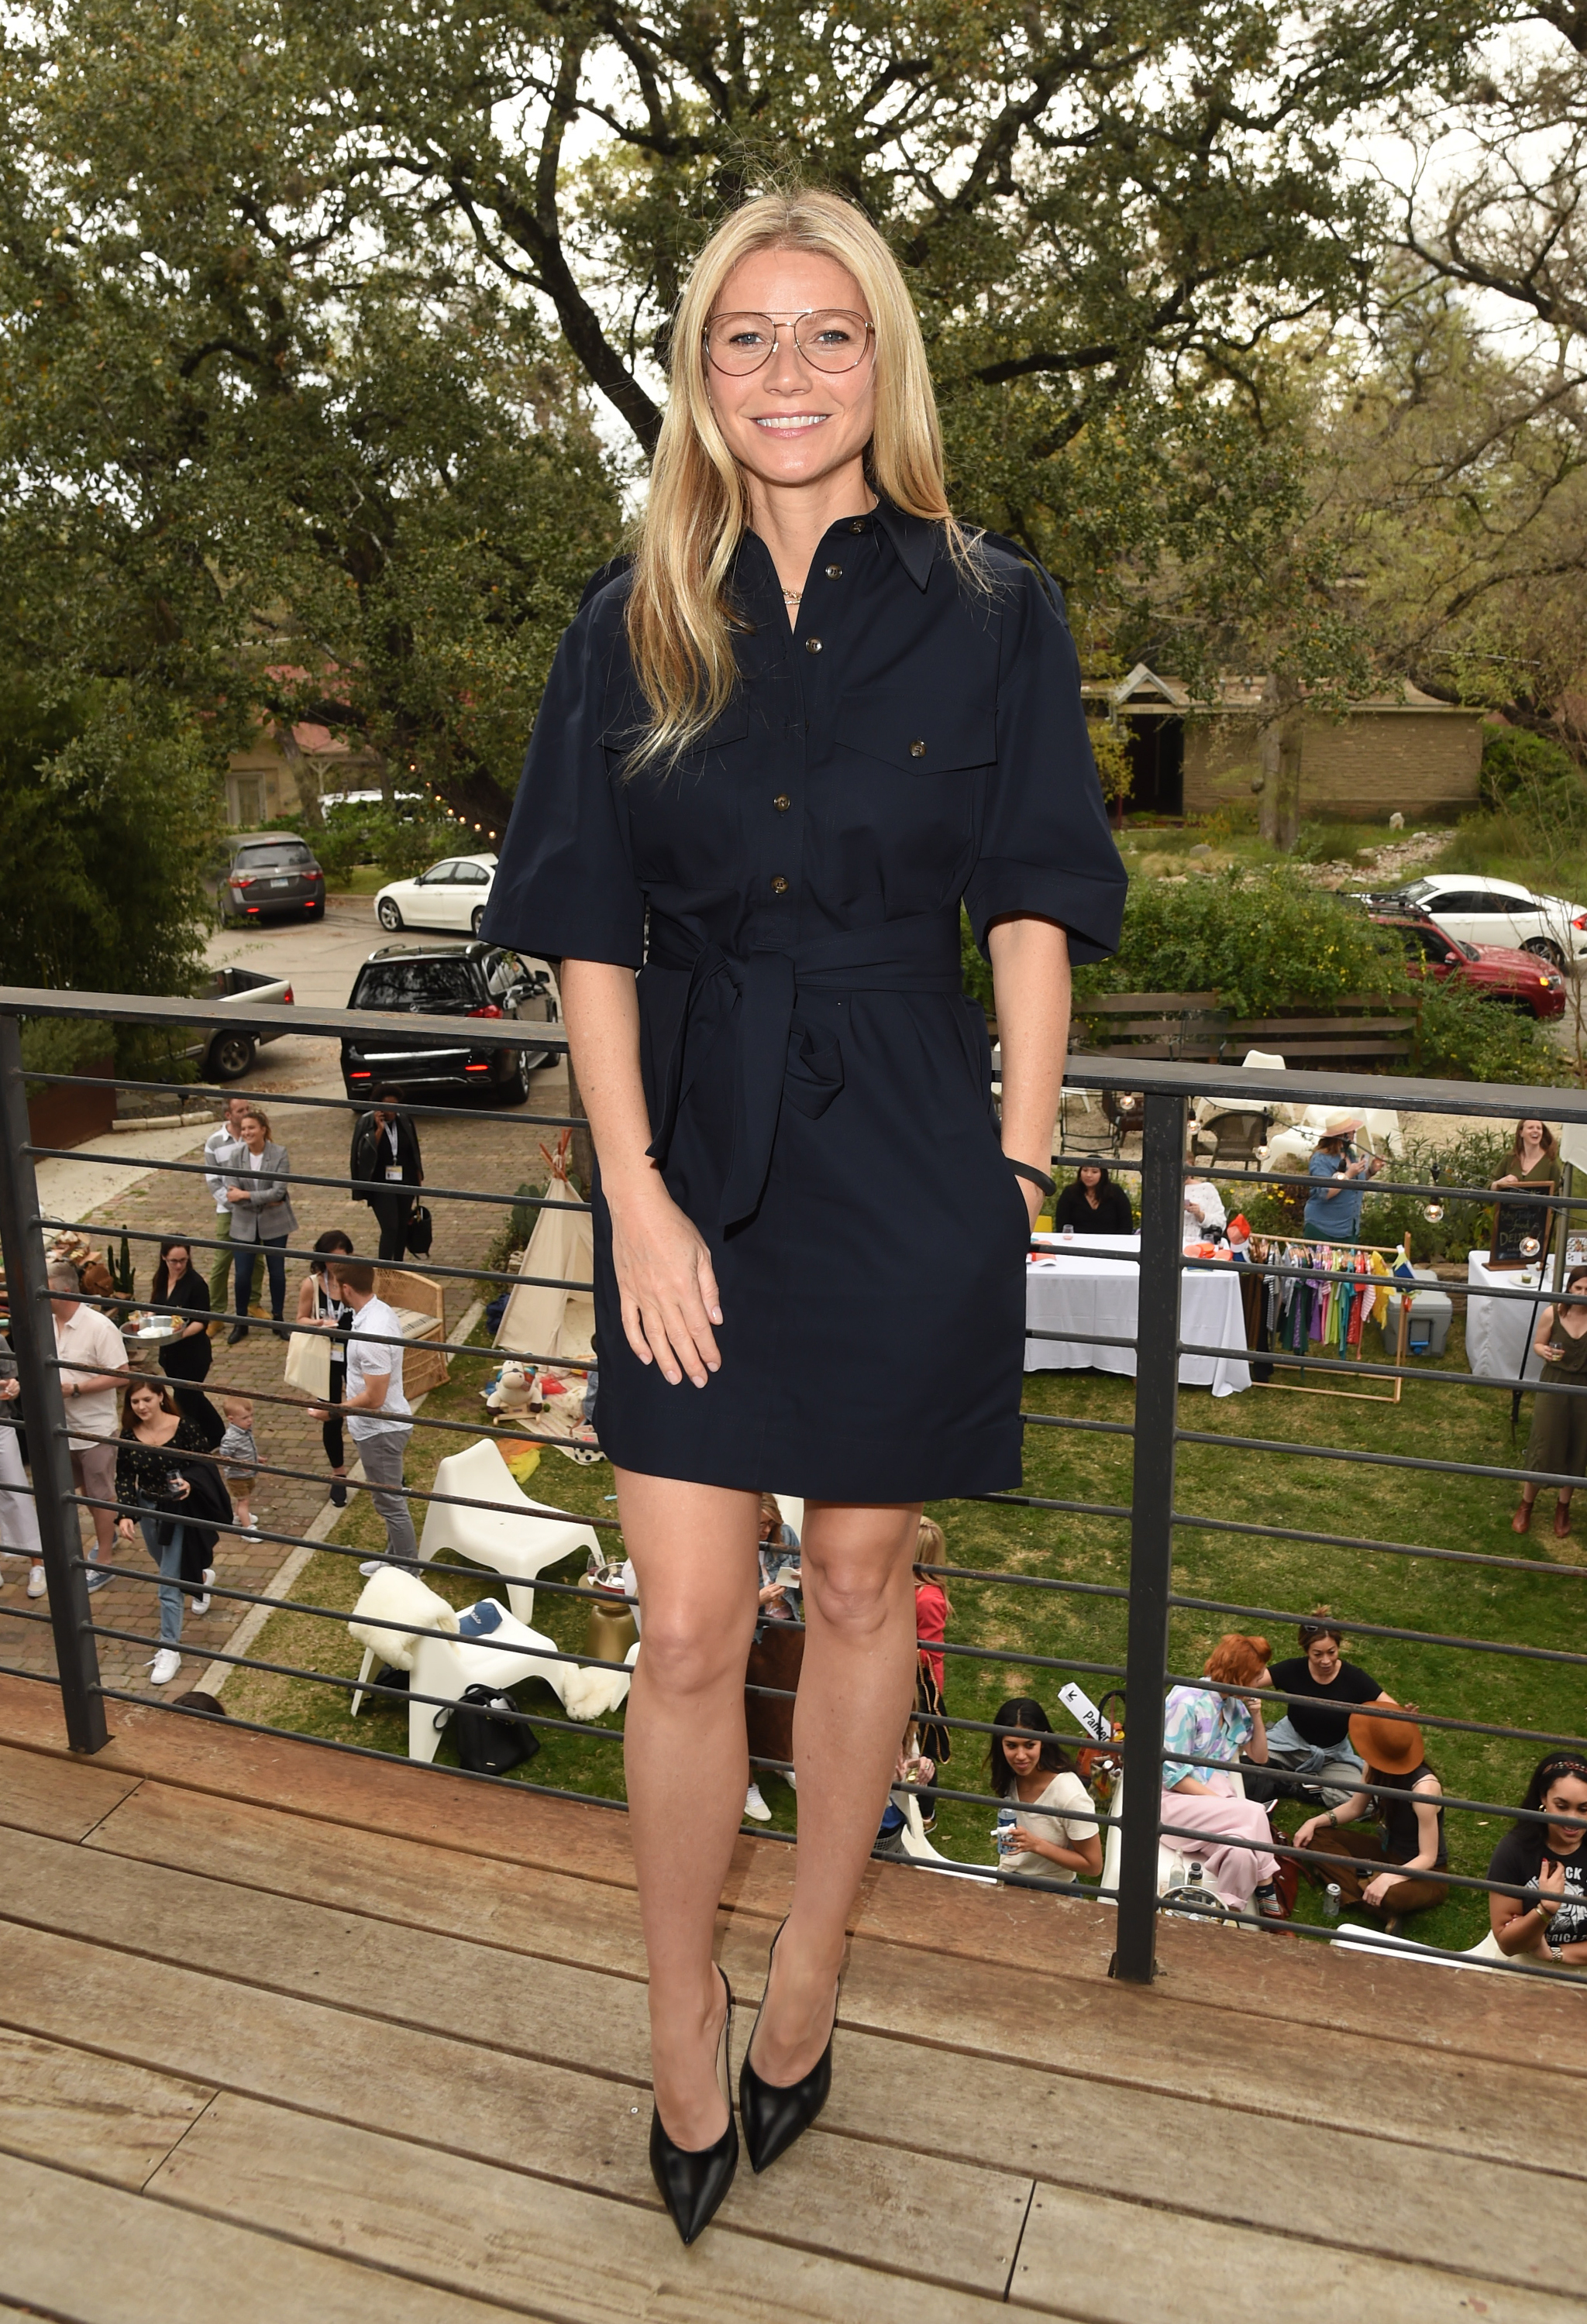 Gwyneth Paltrow attends the Vision Council 3 Day Eye Health event at The Jane Club during SXSW in Austin on March 10, 2019.